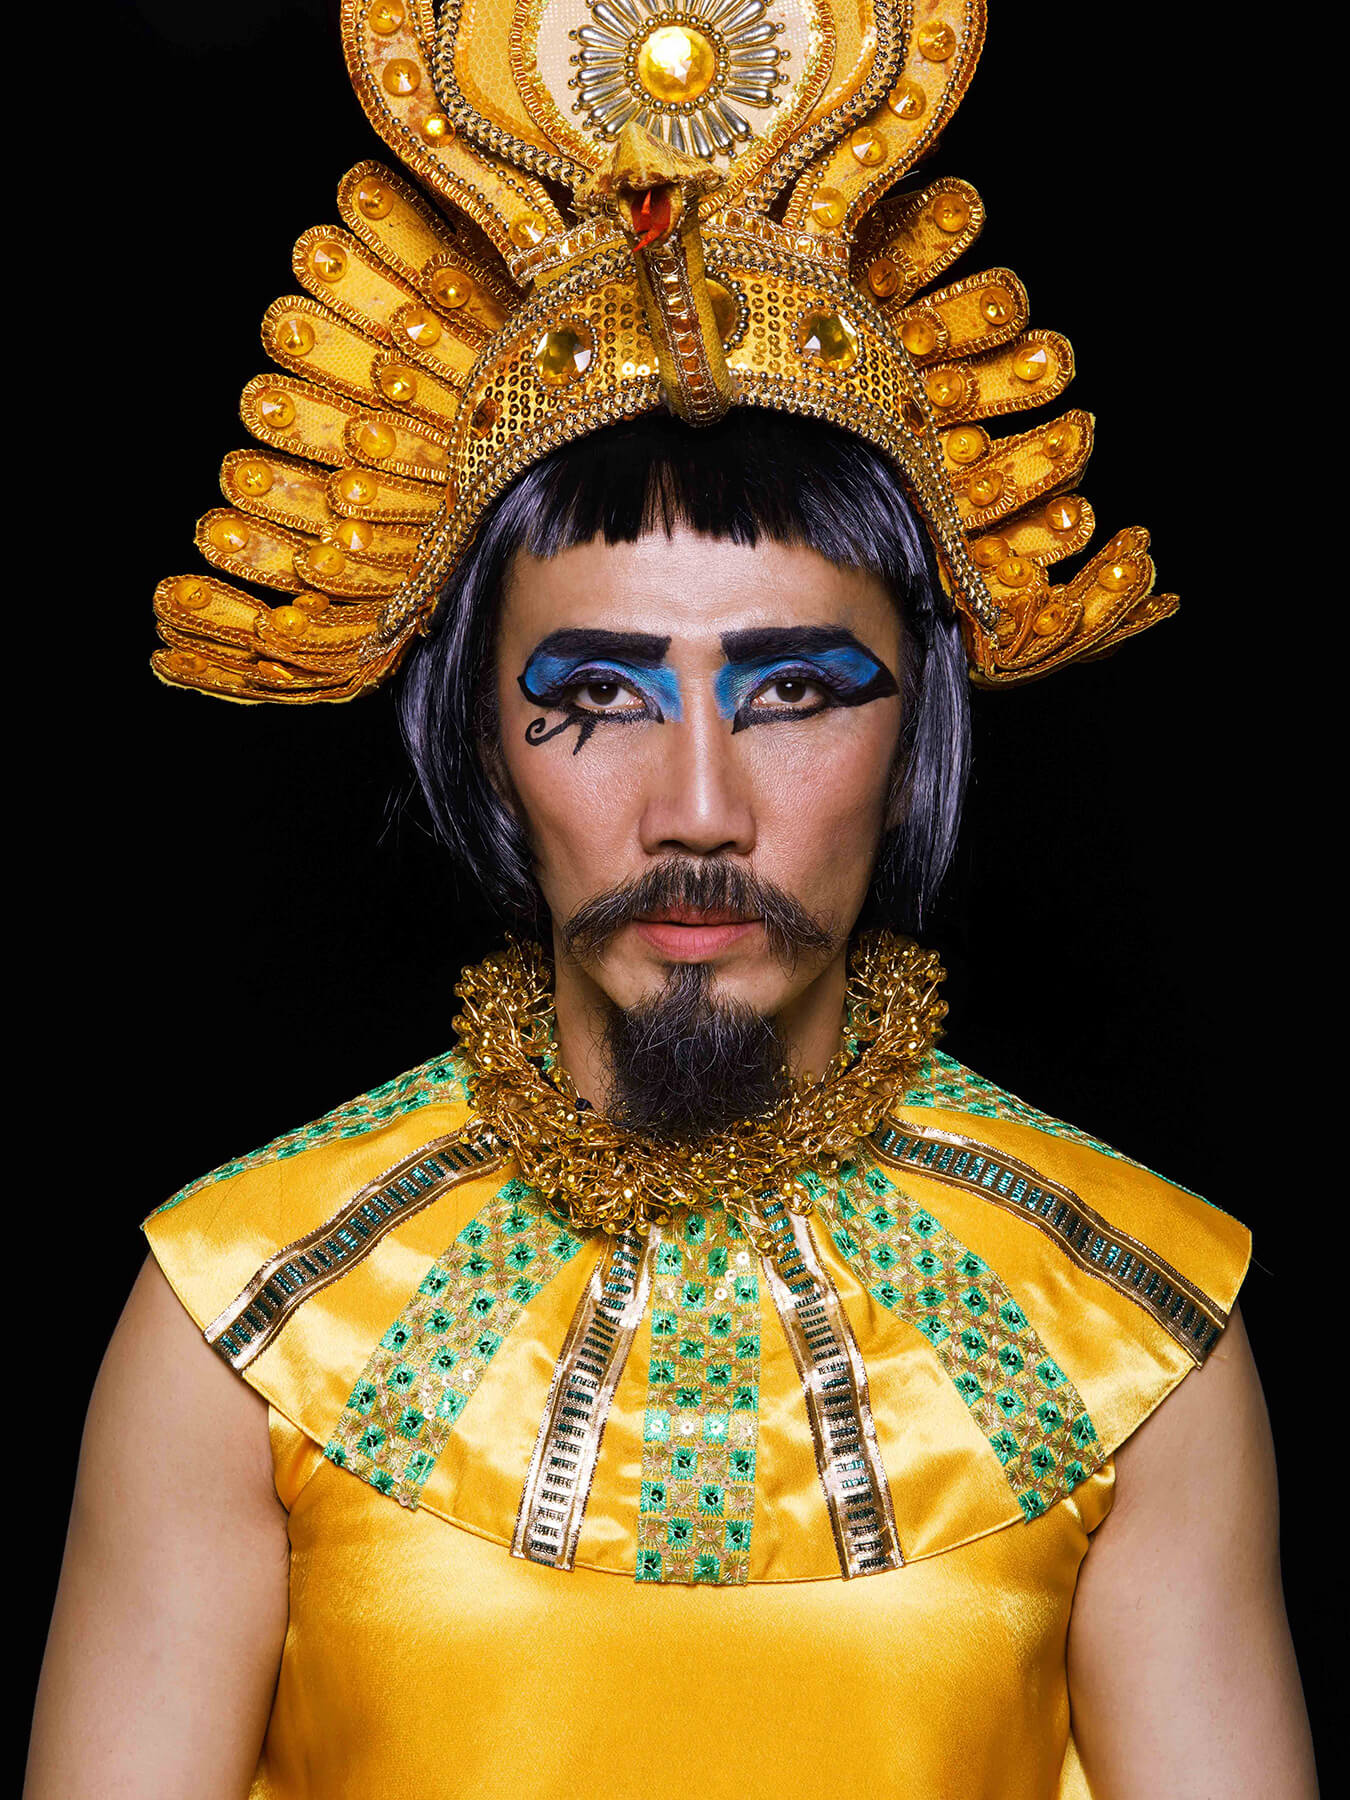 6 Nov 2017 Derong is photographed as Cleopatra